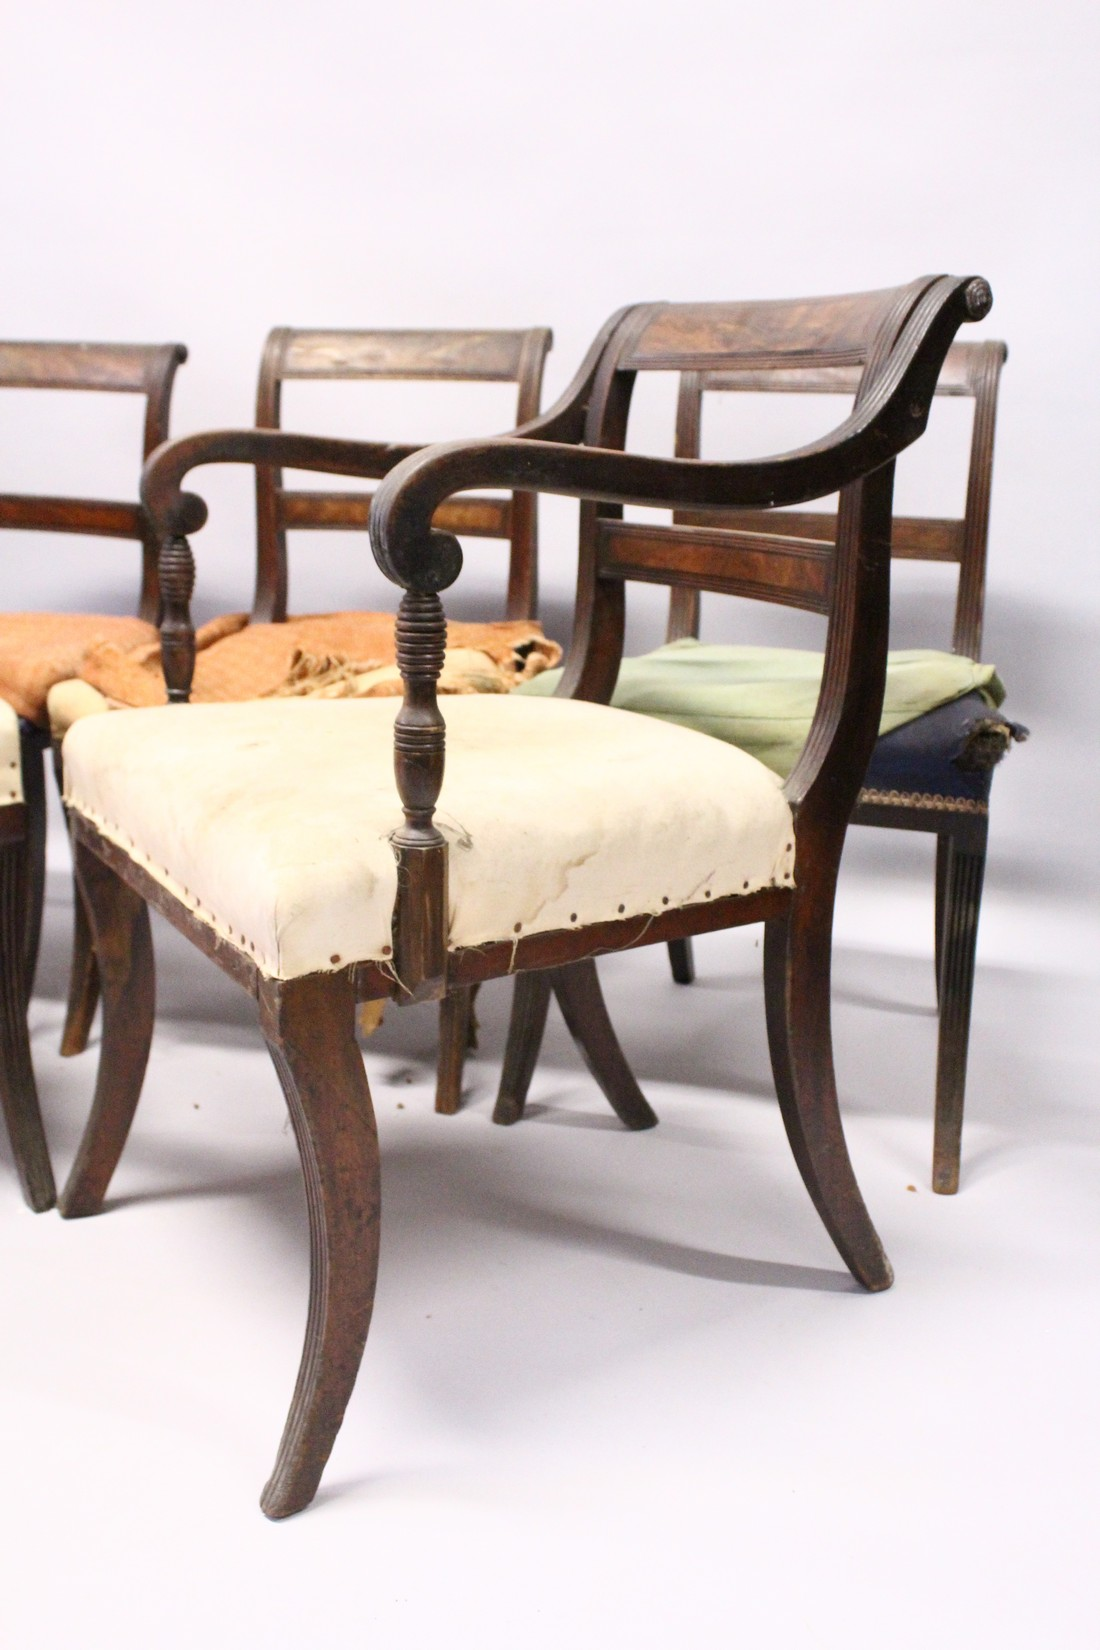 A PAIR OF MAHOGANY, SABRE LEG ARM CHAIRS and three matching single chairs. - Image 4 of 5